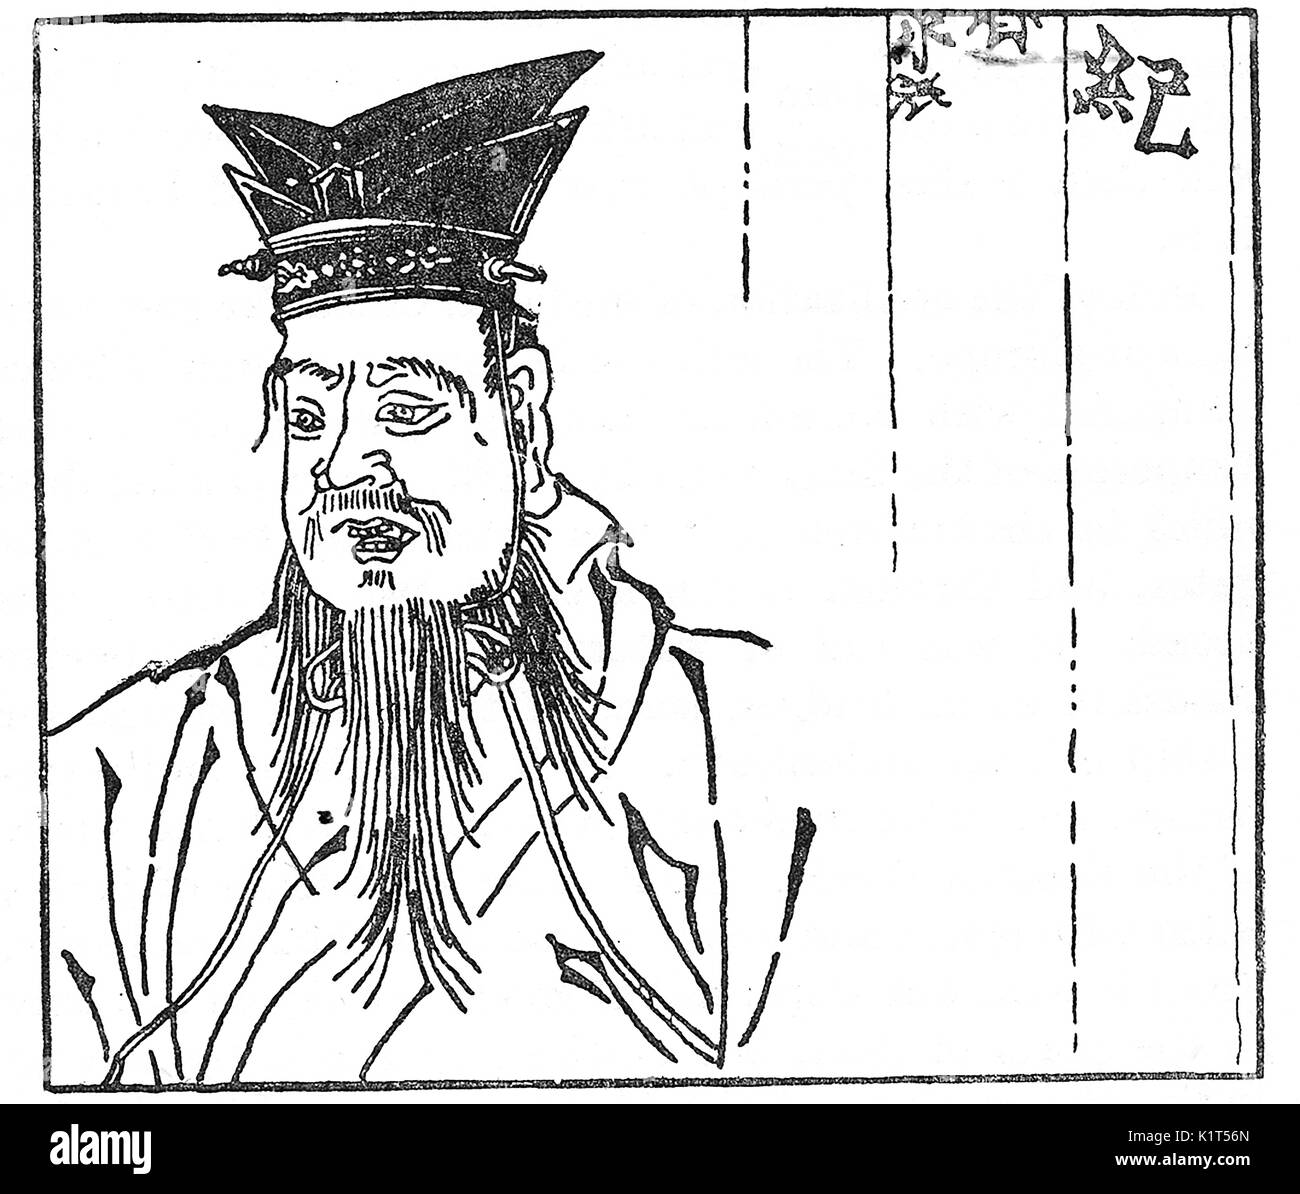 A woodcut portrait of the Chinese philosopher Confucius (Kong Qiu) from 'The Family Sayings of Confucius' printed in movable type in Korea in 1300 AD - Stock Image